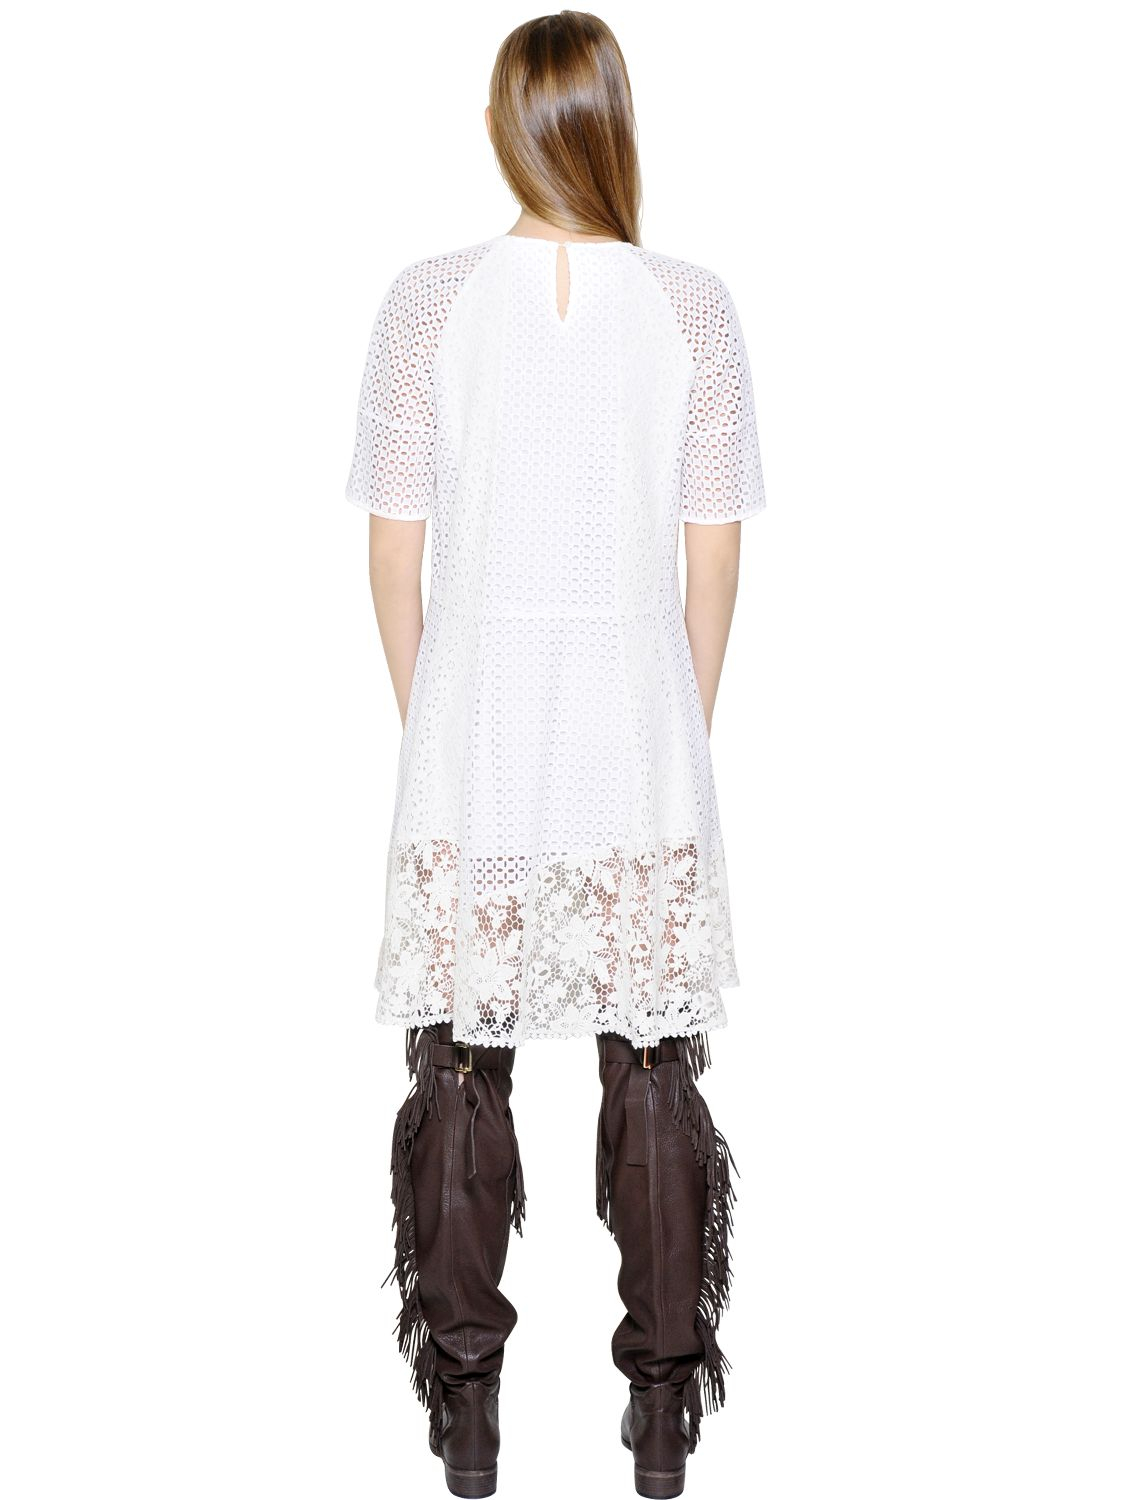 83fae9f5d9519 See By Chloé Patchwork Cotton Lace & Eyelet Dress in White - Lyst